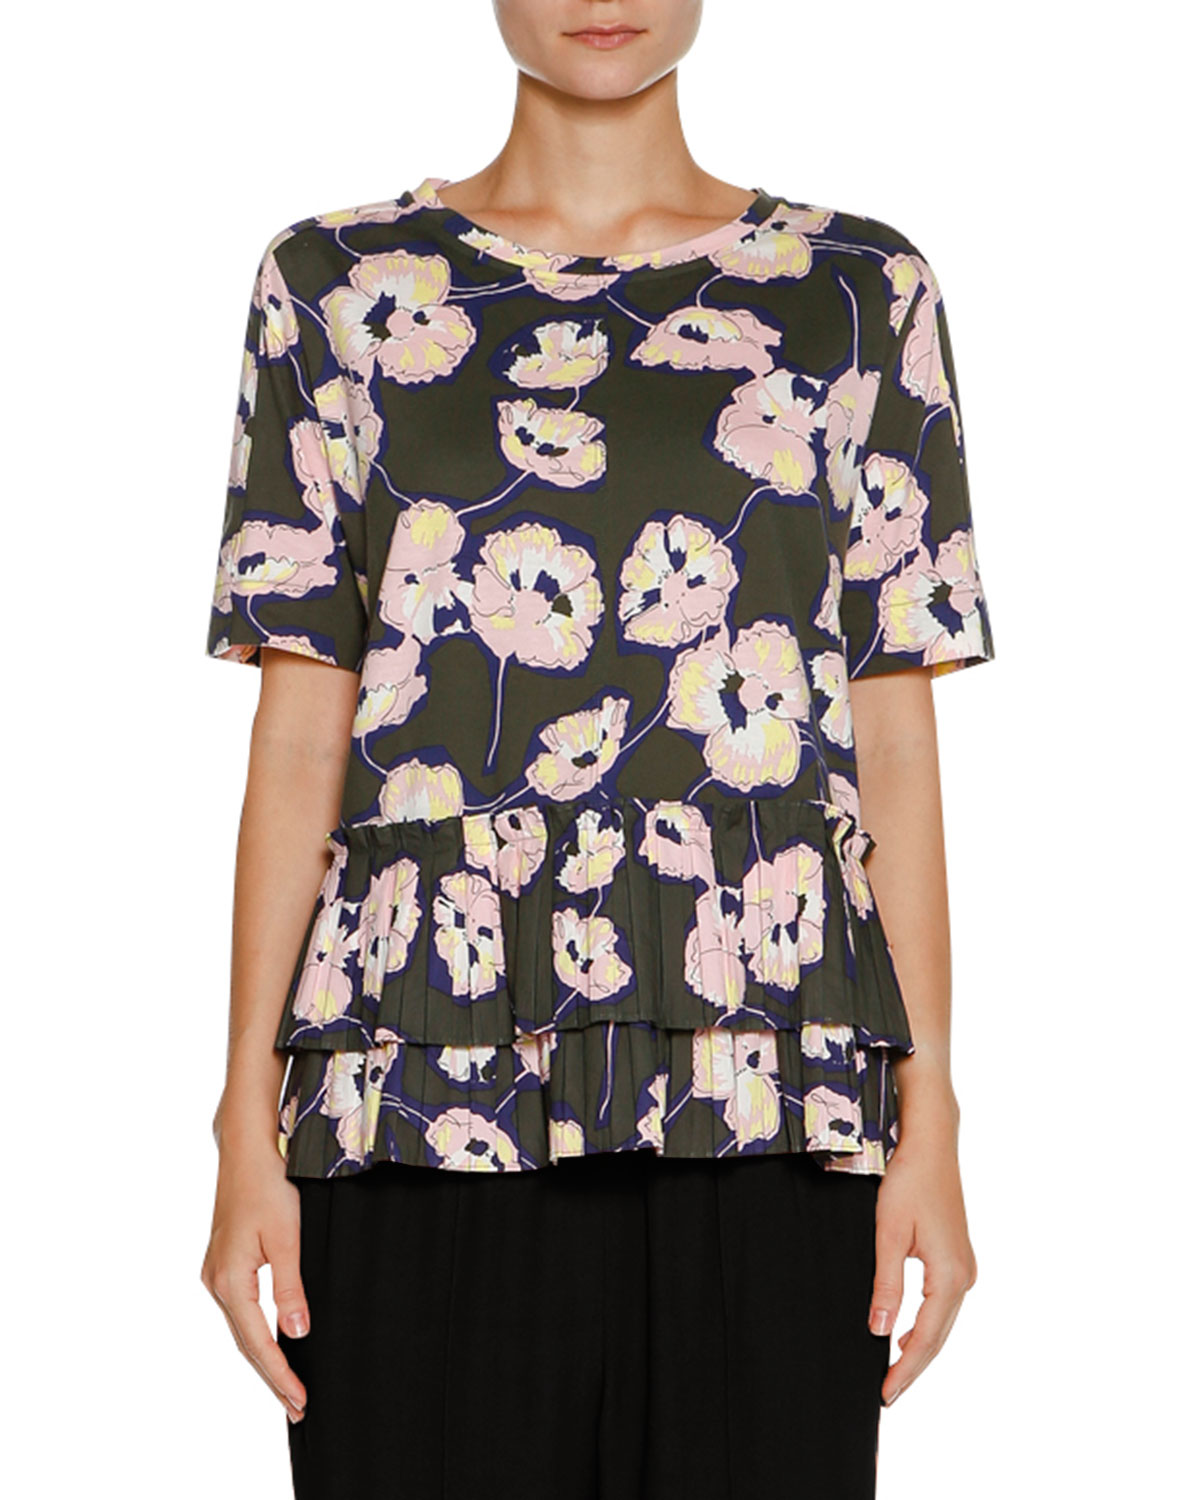 Ruffled Short-Sleeve Floral-Print Top, Green